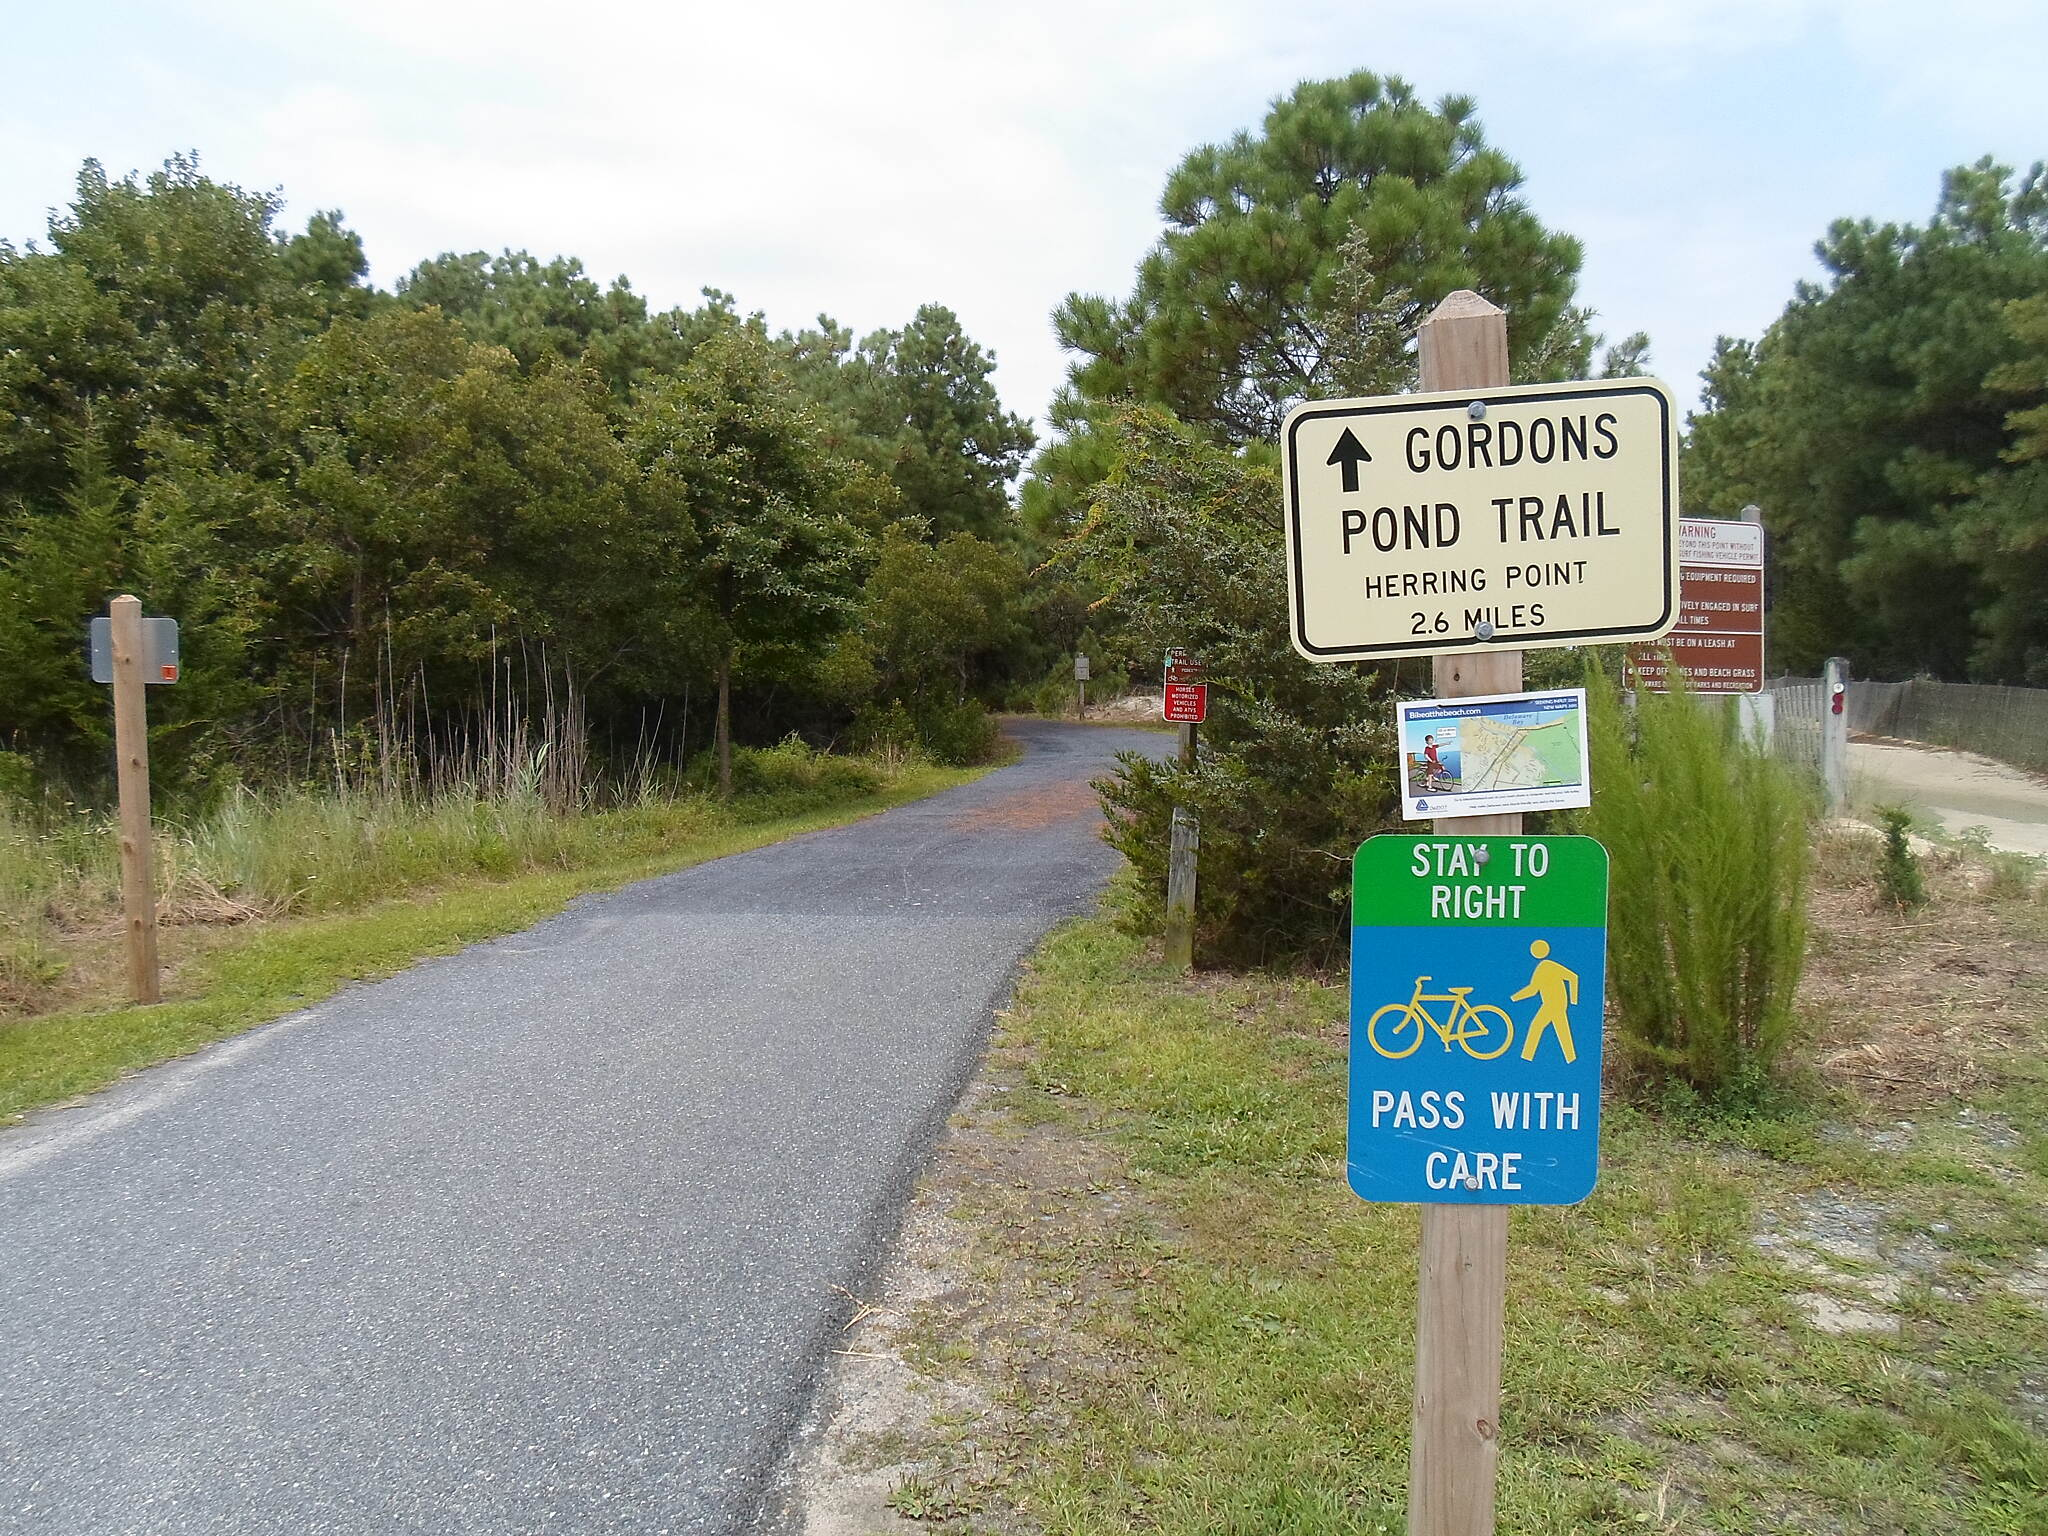 Gordons Pond Trail Gordons Pond Trail Signs near the southern terminus guiding trail users and reminding them of proper etiquette.